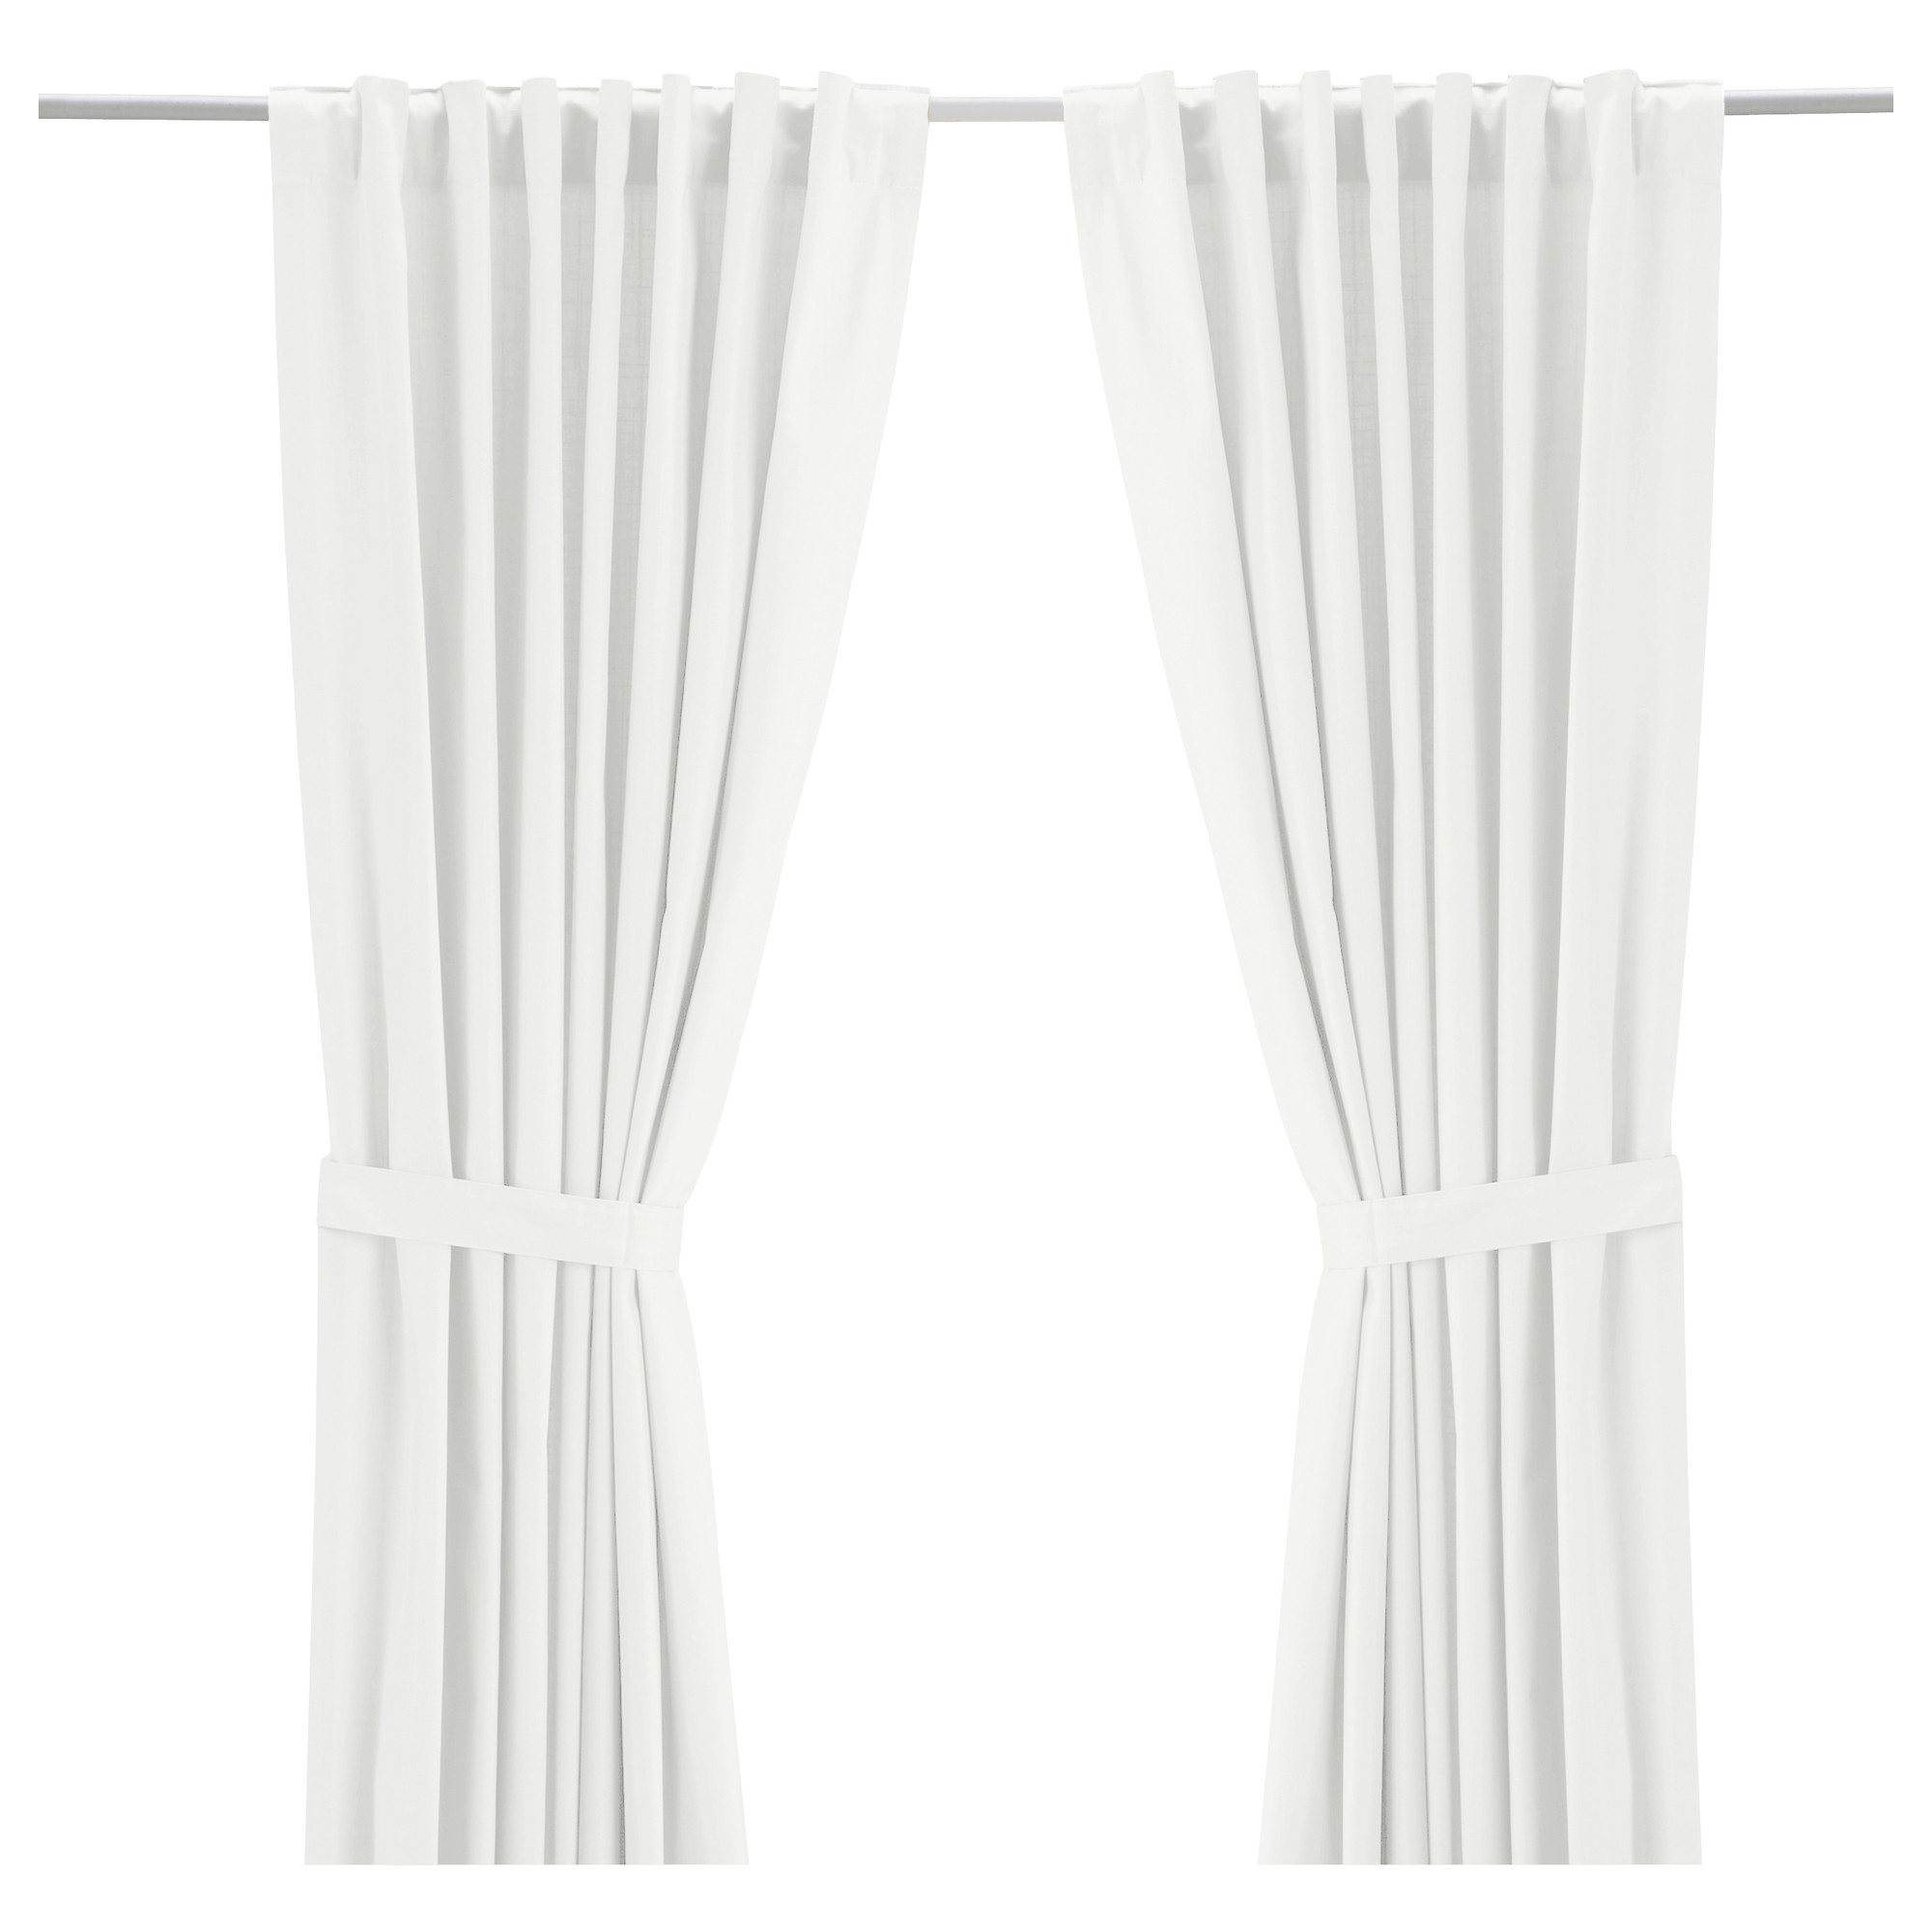 drapes navy single insulated ikea home these ricardo like panels in curtains extra blackout curtain panel look elegance wayfair ready love ones living thermal room drapery long short target blue youll linen uk restoration white to depot full made aina and trading bedroom grey